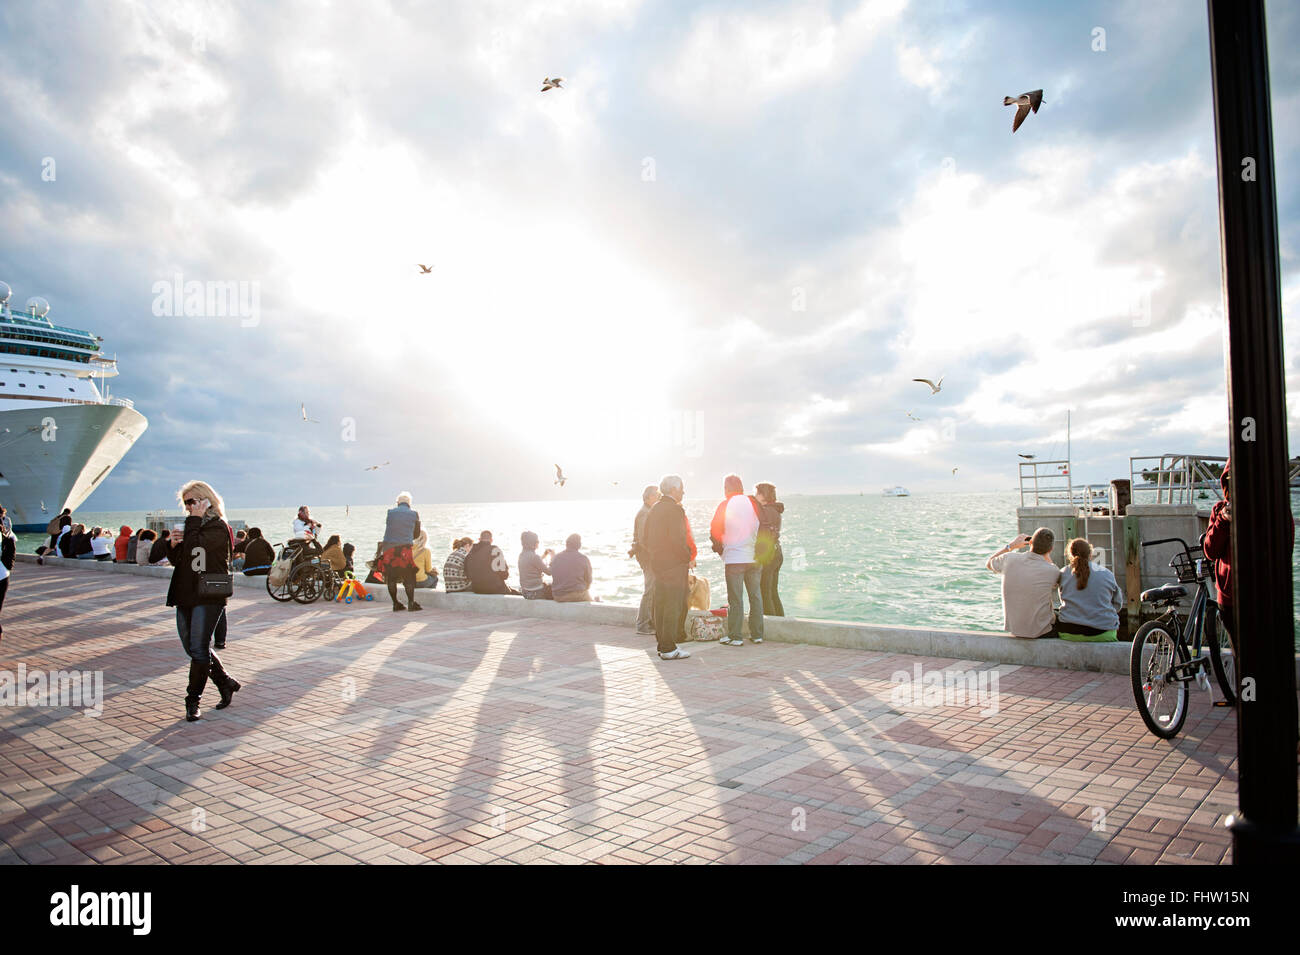 Waiting for sunset at Mallory Square - Stock Image